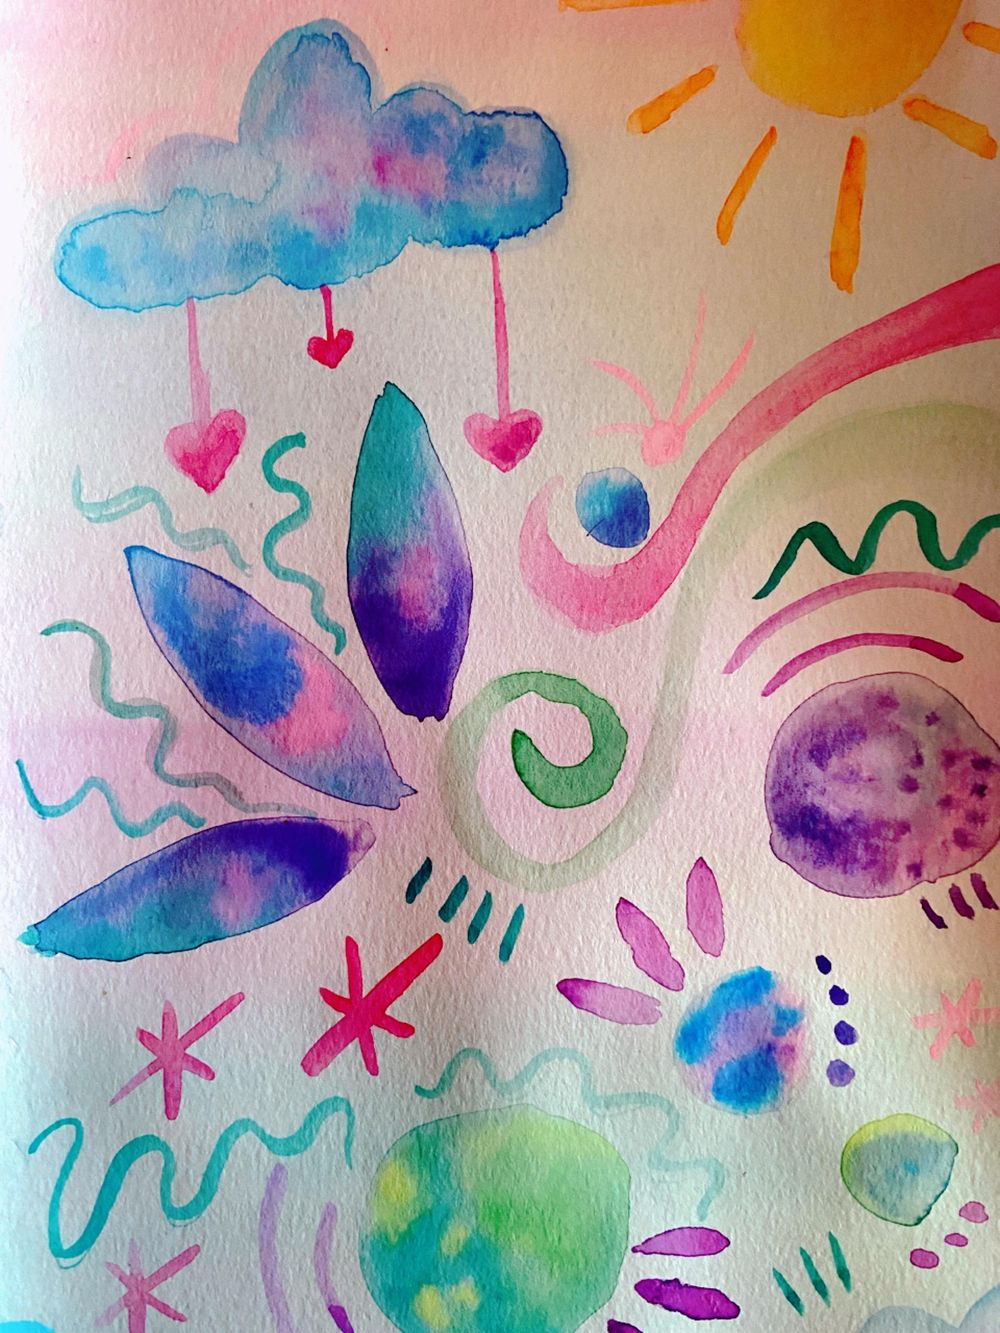 Watercolor Hypnobirthing Affirmations - image 2 - student project